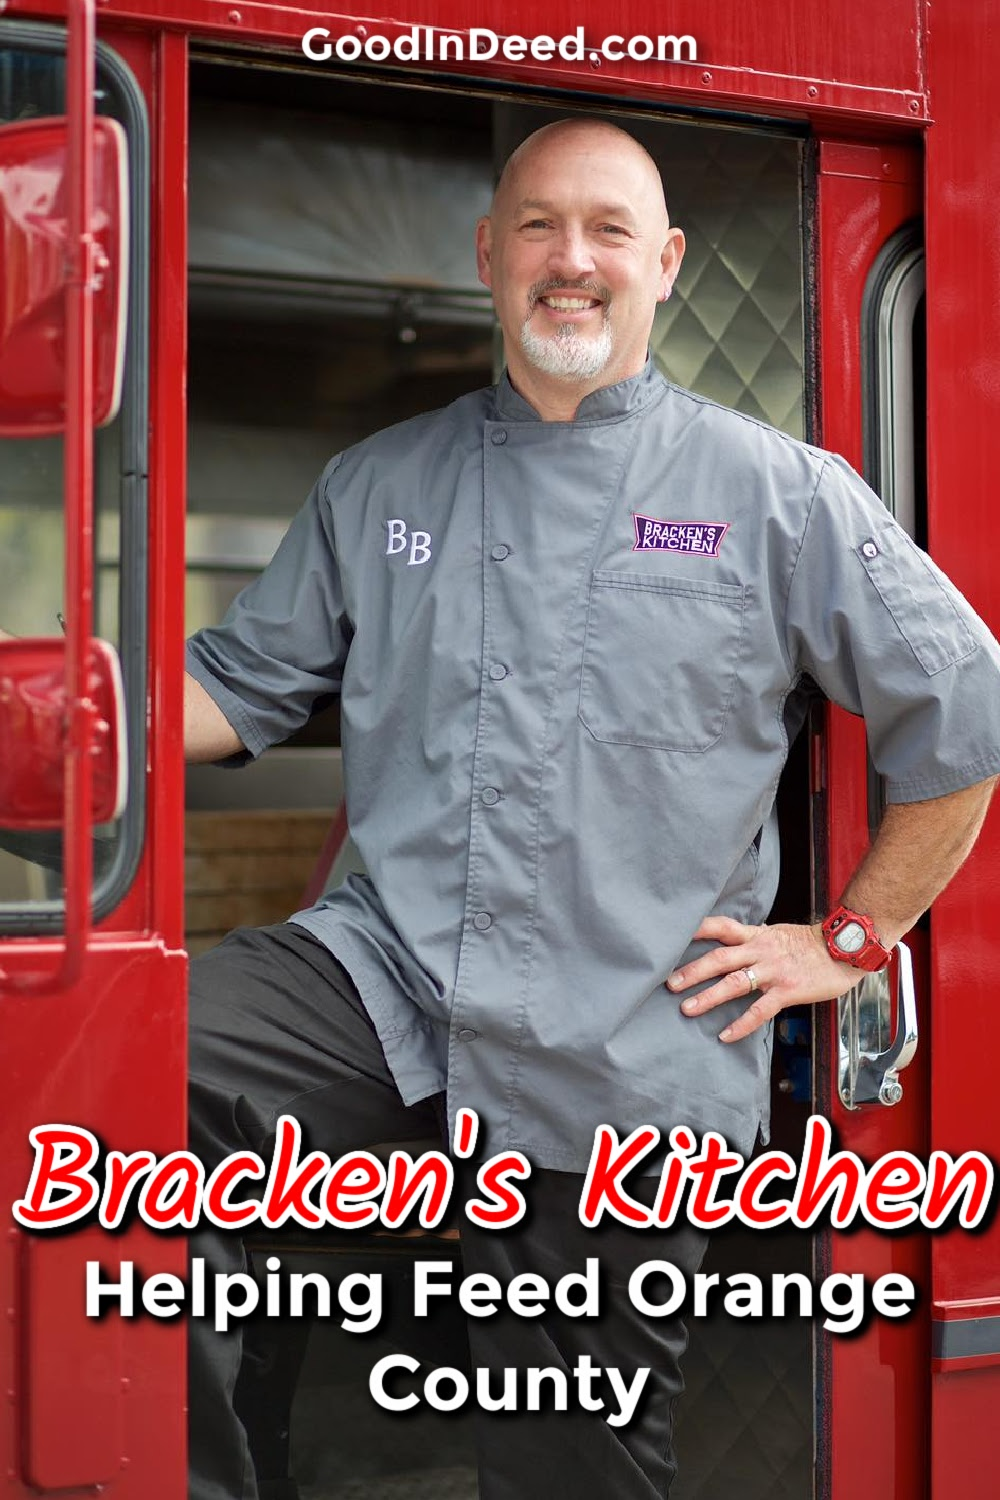 Bracken's Kitchen is making waves with their innovative way of helping those in need of a healthy meal get it without even having to travel far.